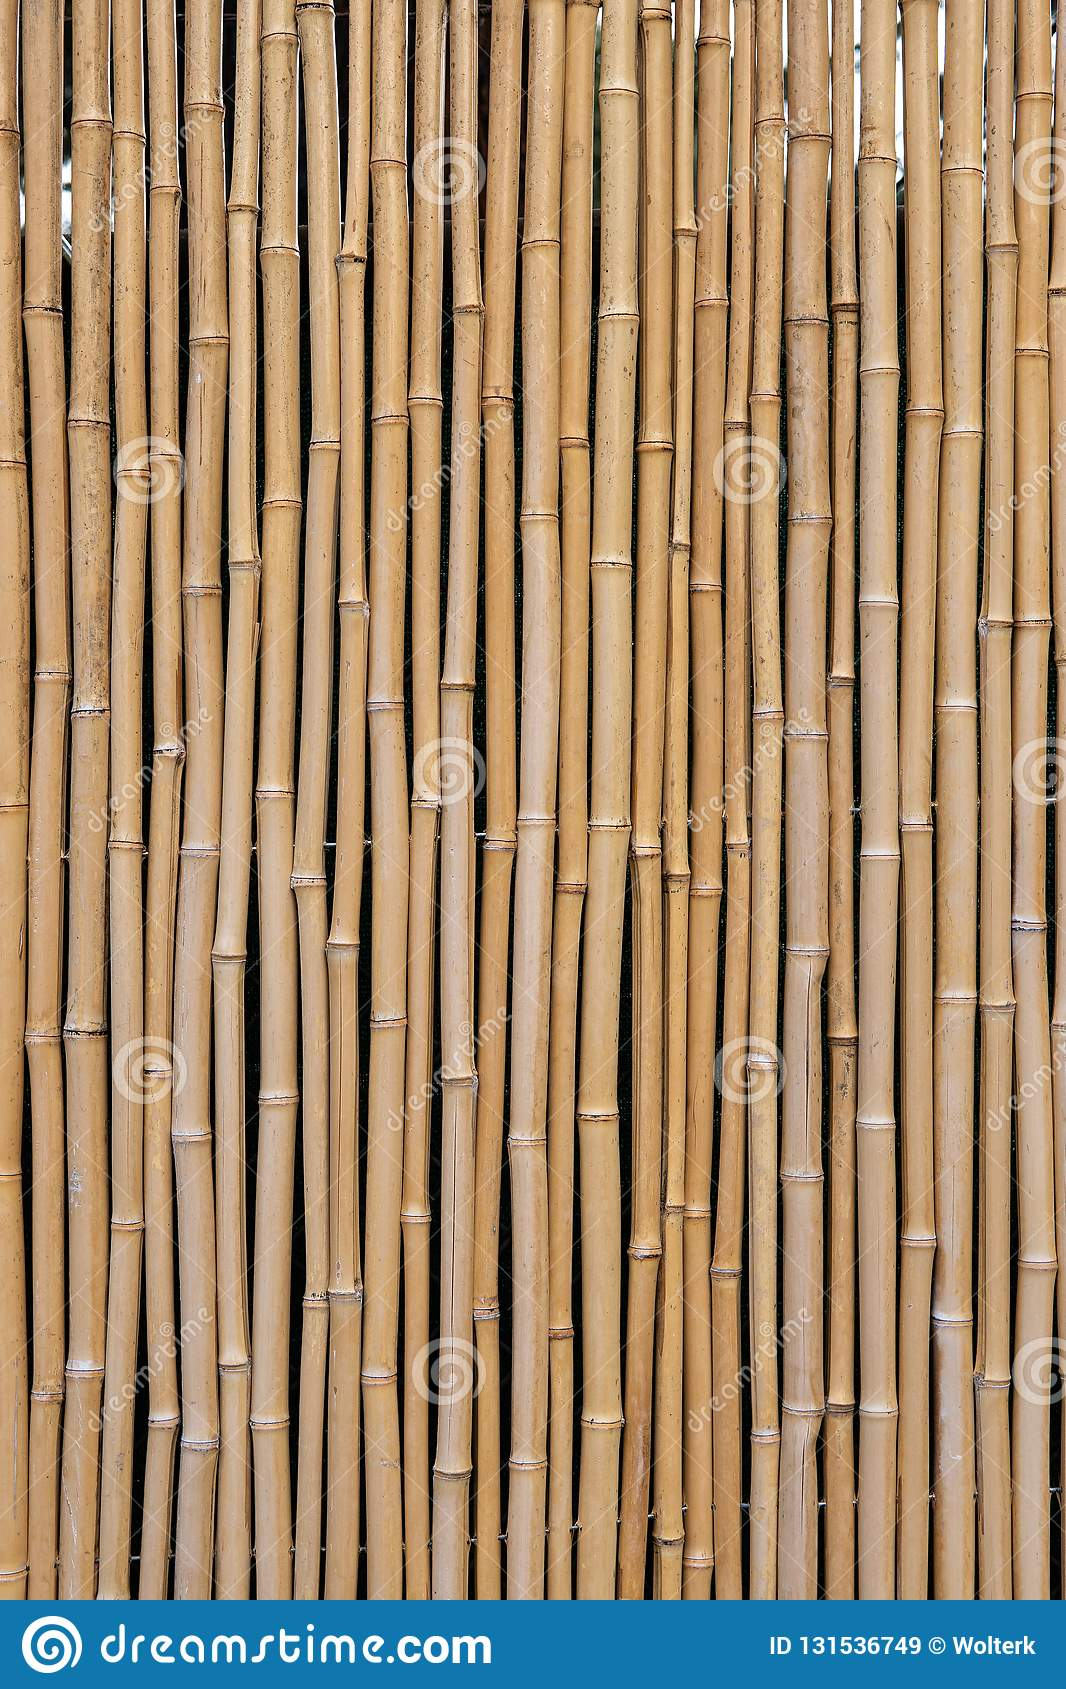 Grouping of bamboo pattern forming a fence backdrop or background